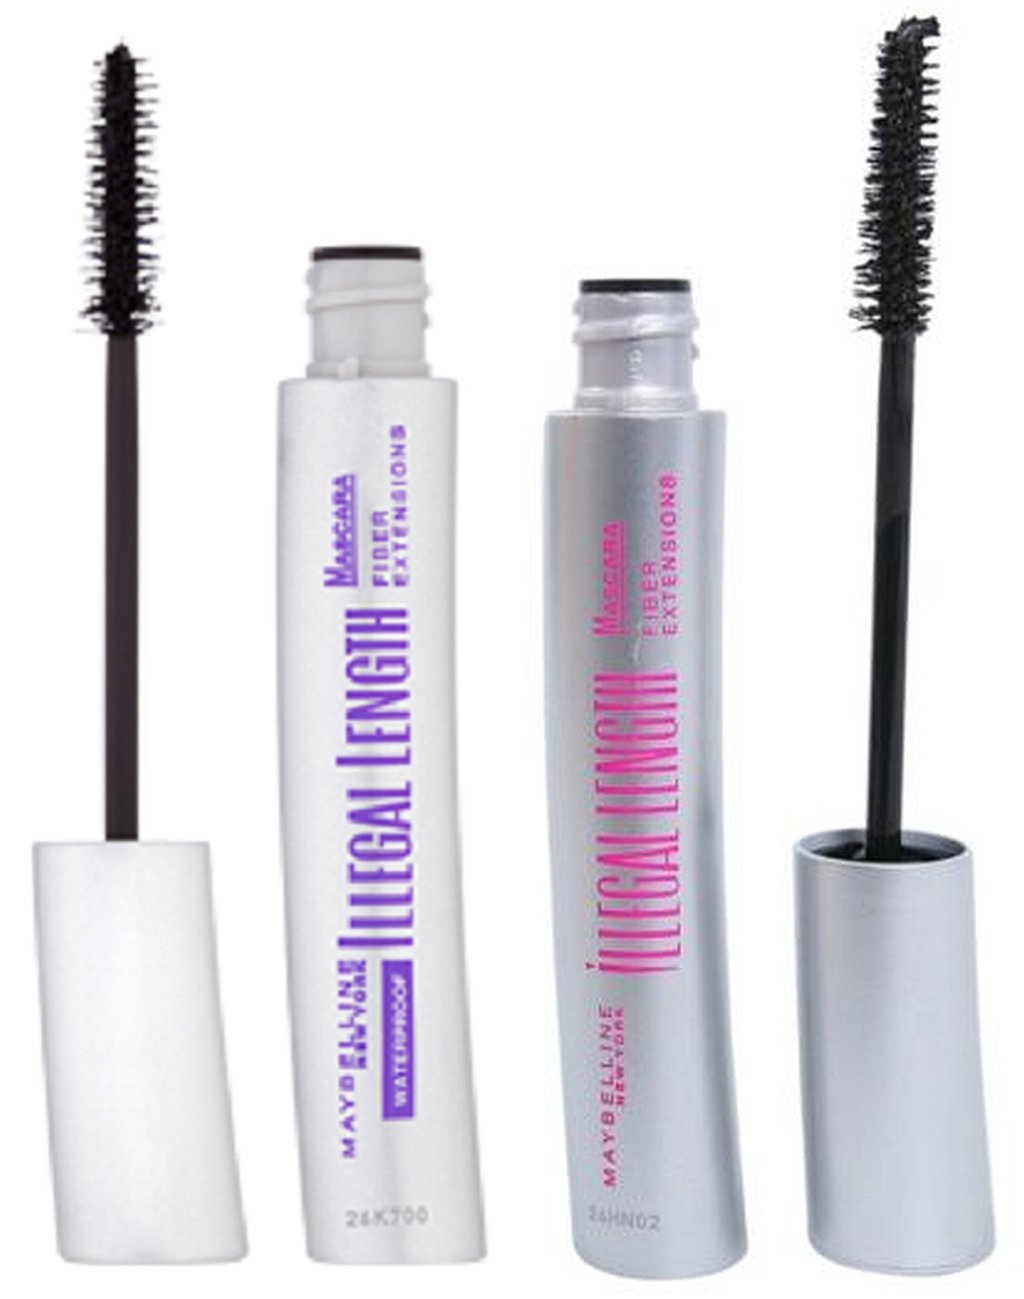 c6a468de357 2 x MAYBELLINE ILLEGAL LENGTH FIBRE EXTENSIONS Mascara Set (Original and  Waterproof) - Black: Amazon.co.uk: Beauty